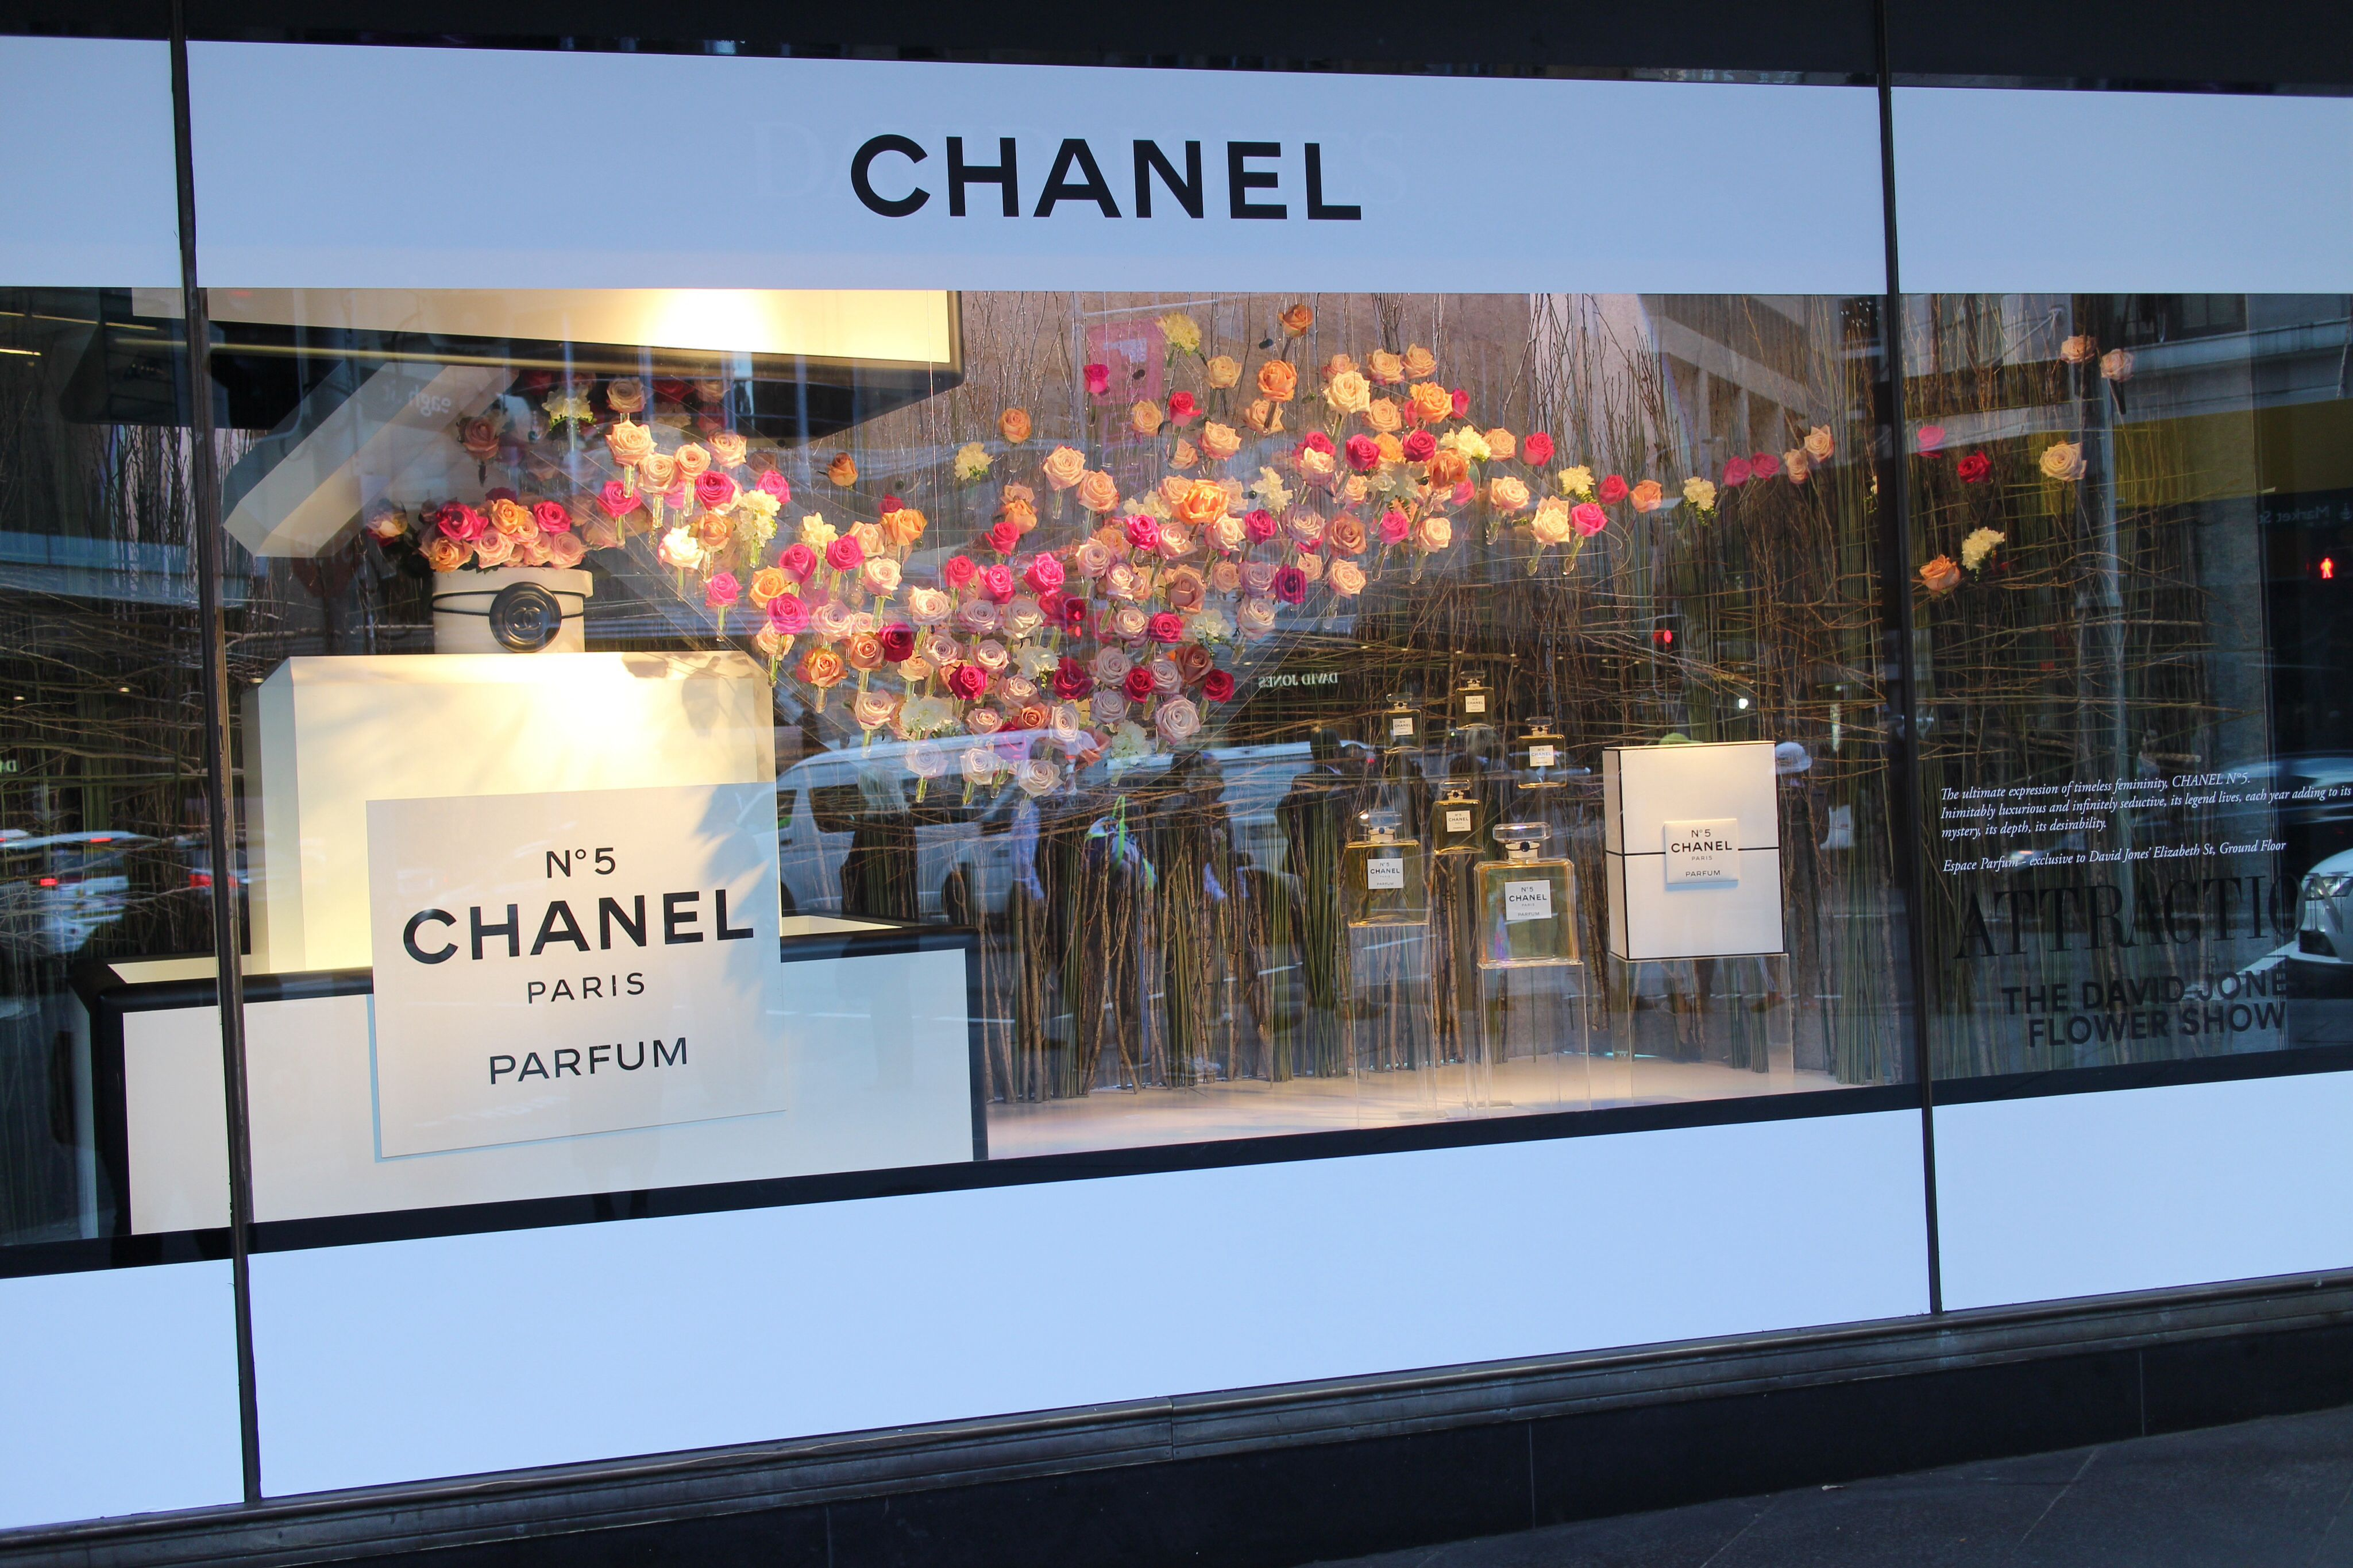 Beautiful chanel window display with blooms